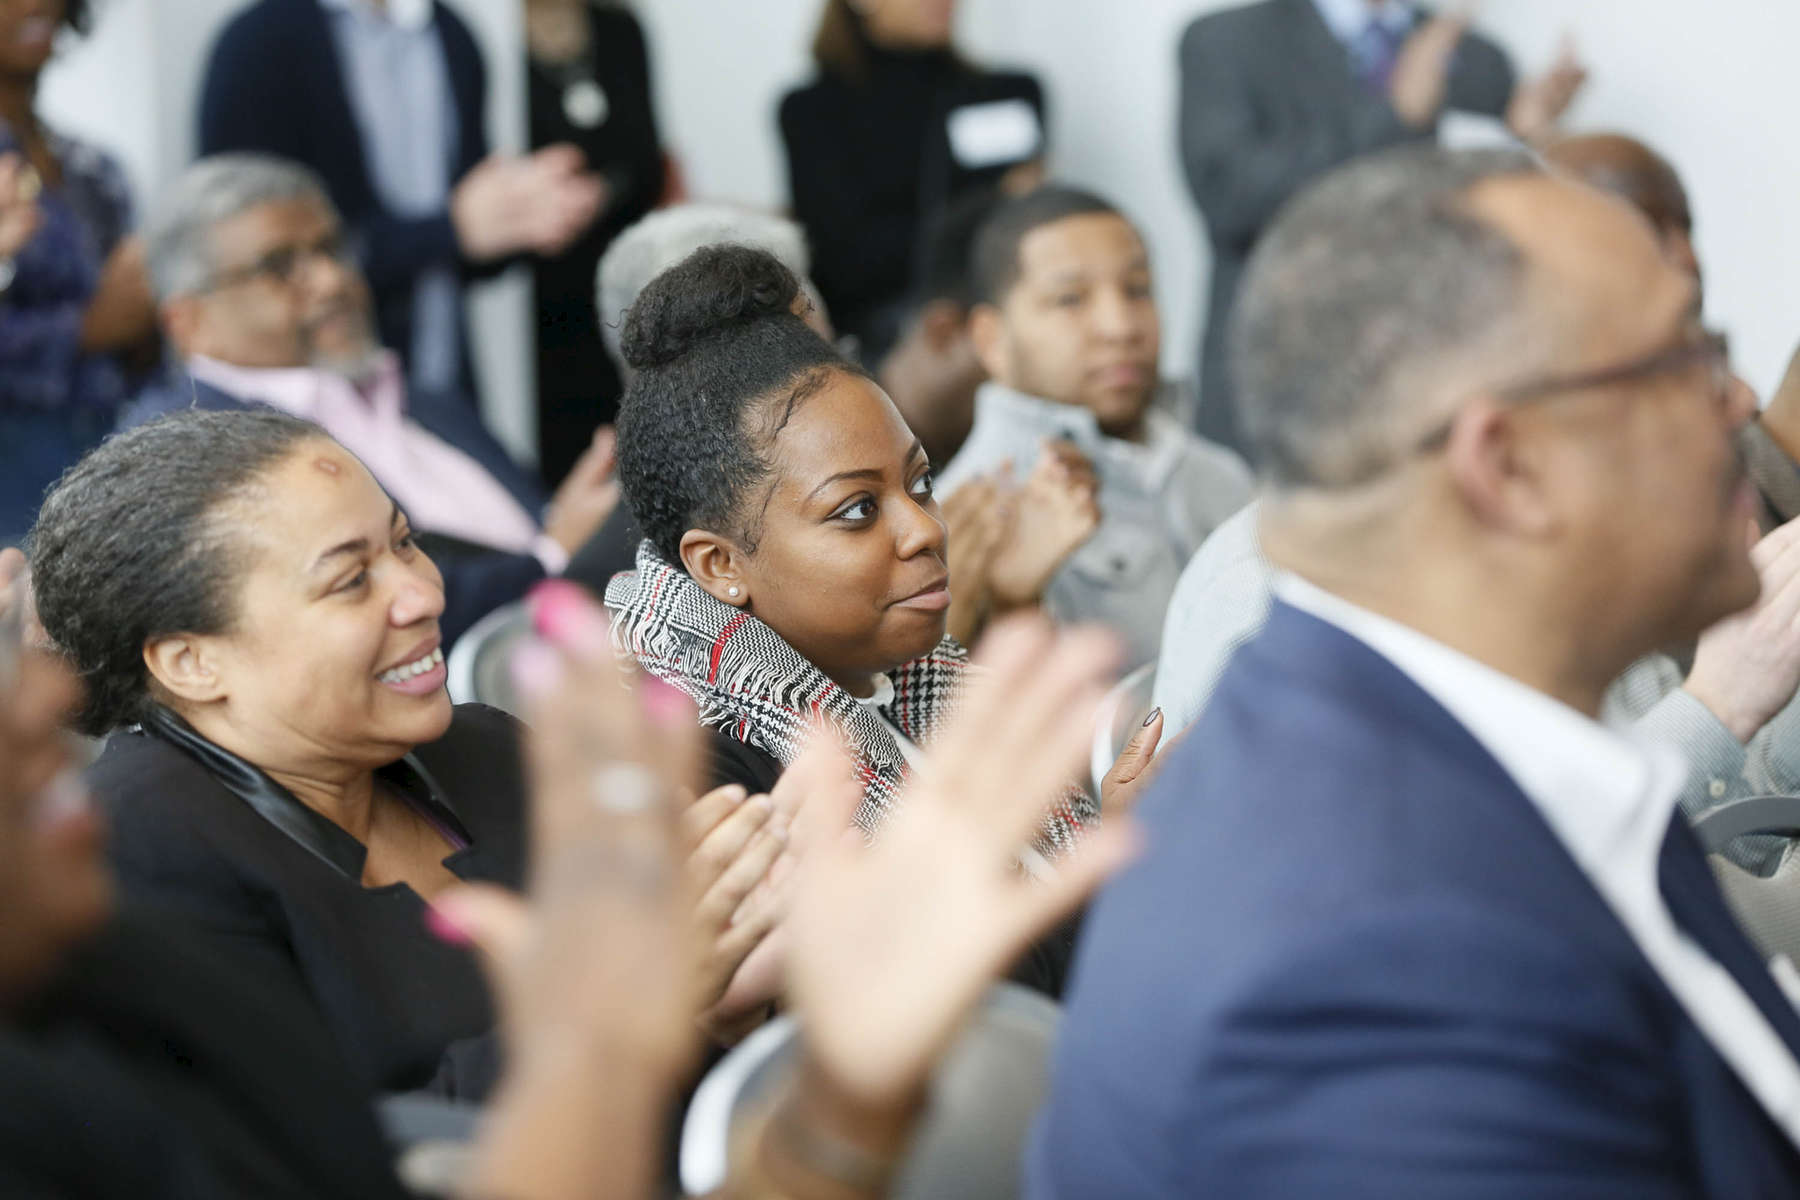 CHICAGO, IL - OCTOBER 17: Audience members enjoy the many speakers at the SMASH Illinois launch in Chicago, Illinois on January 24, 2019.